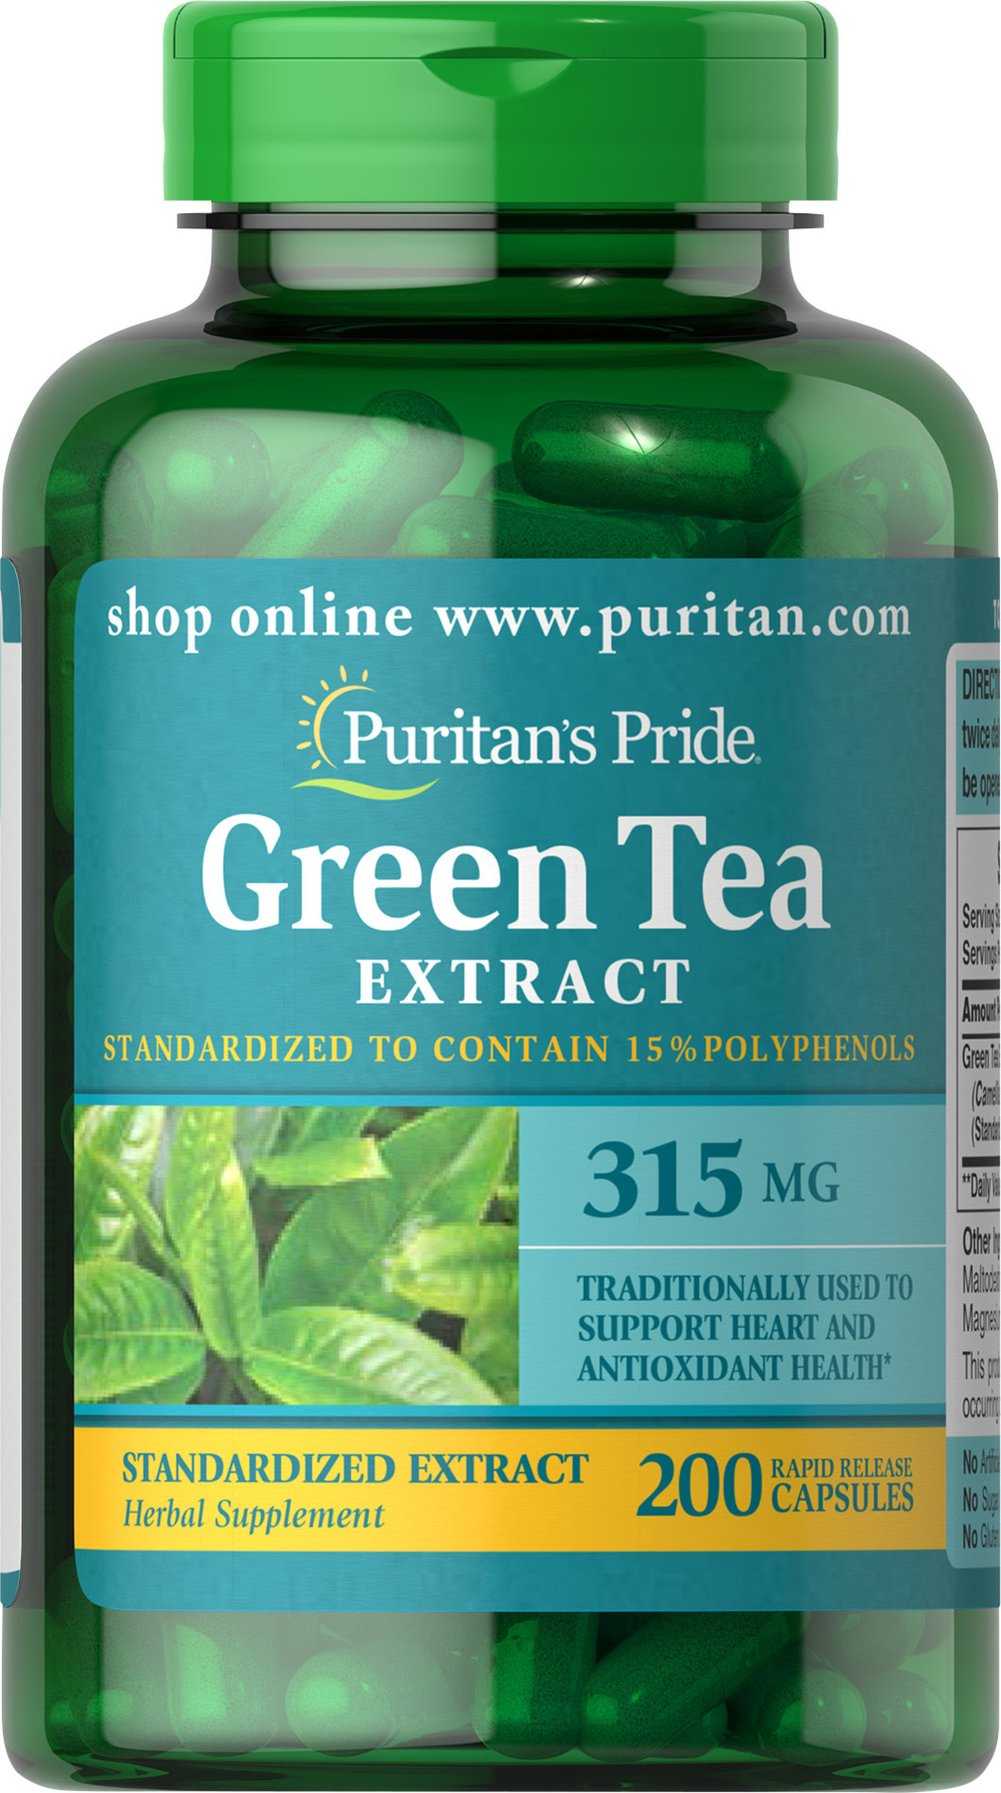 Green Tea Standardized Extract 315 mg  200 Capsules 315 mg $19.99